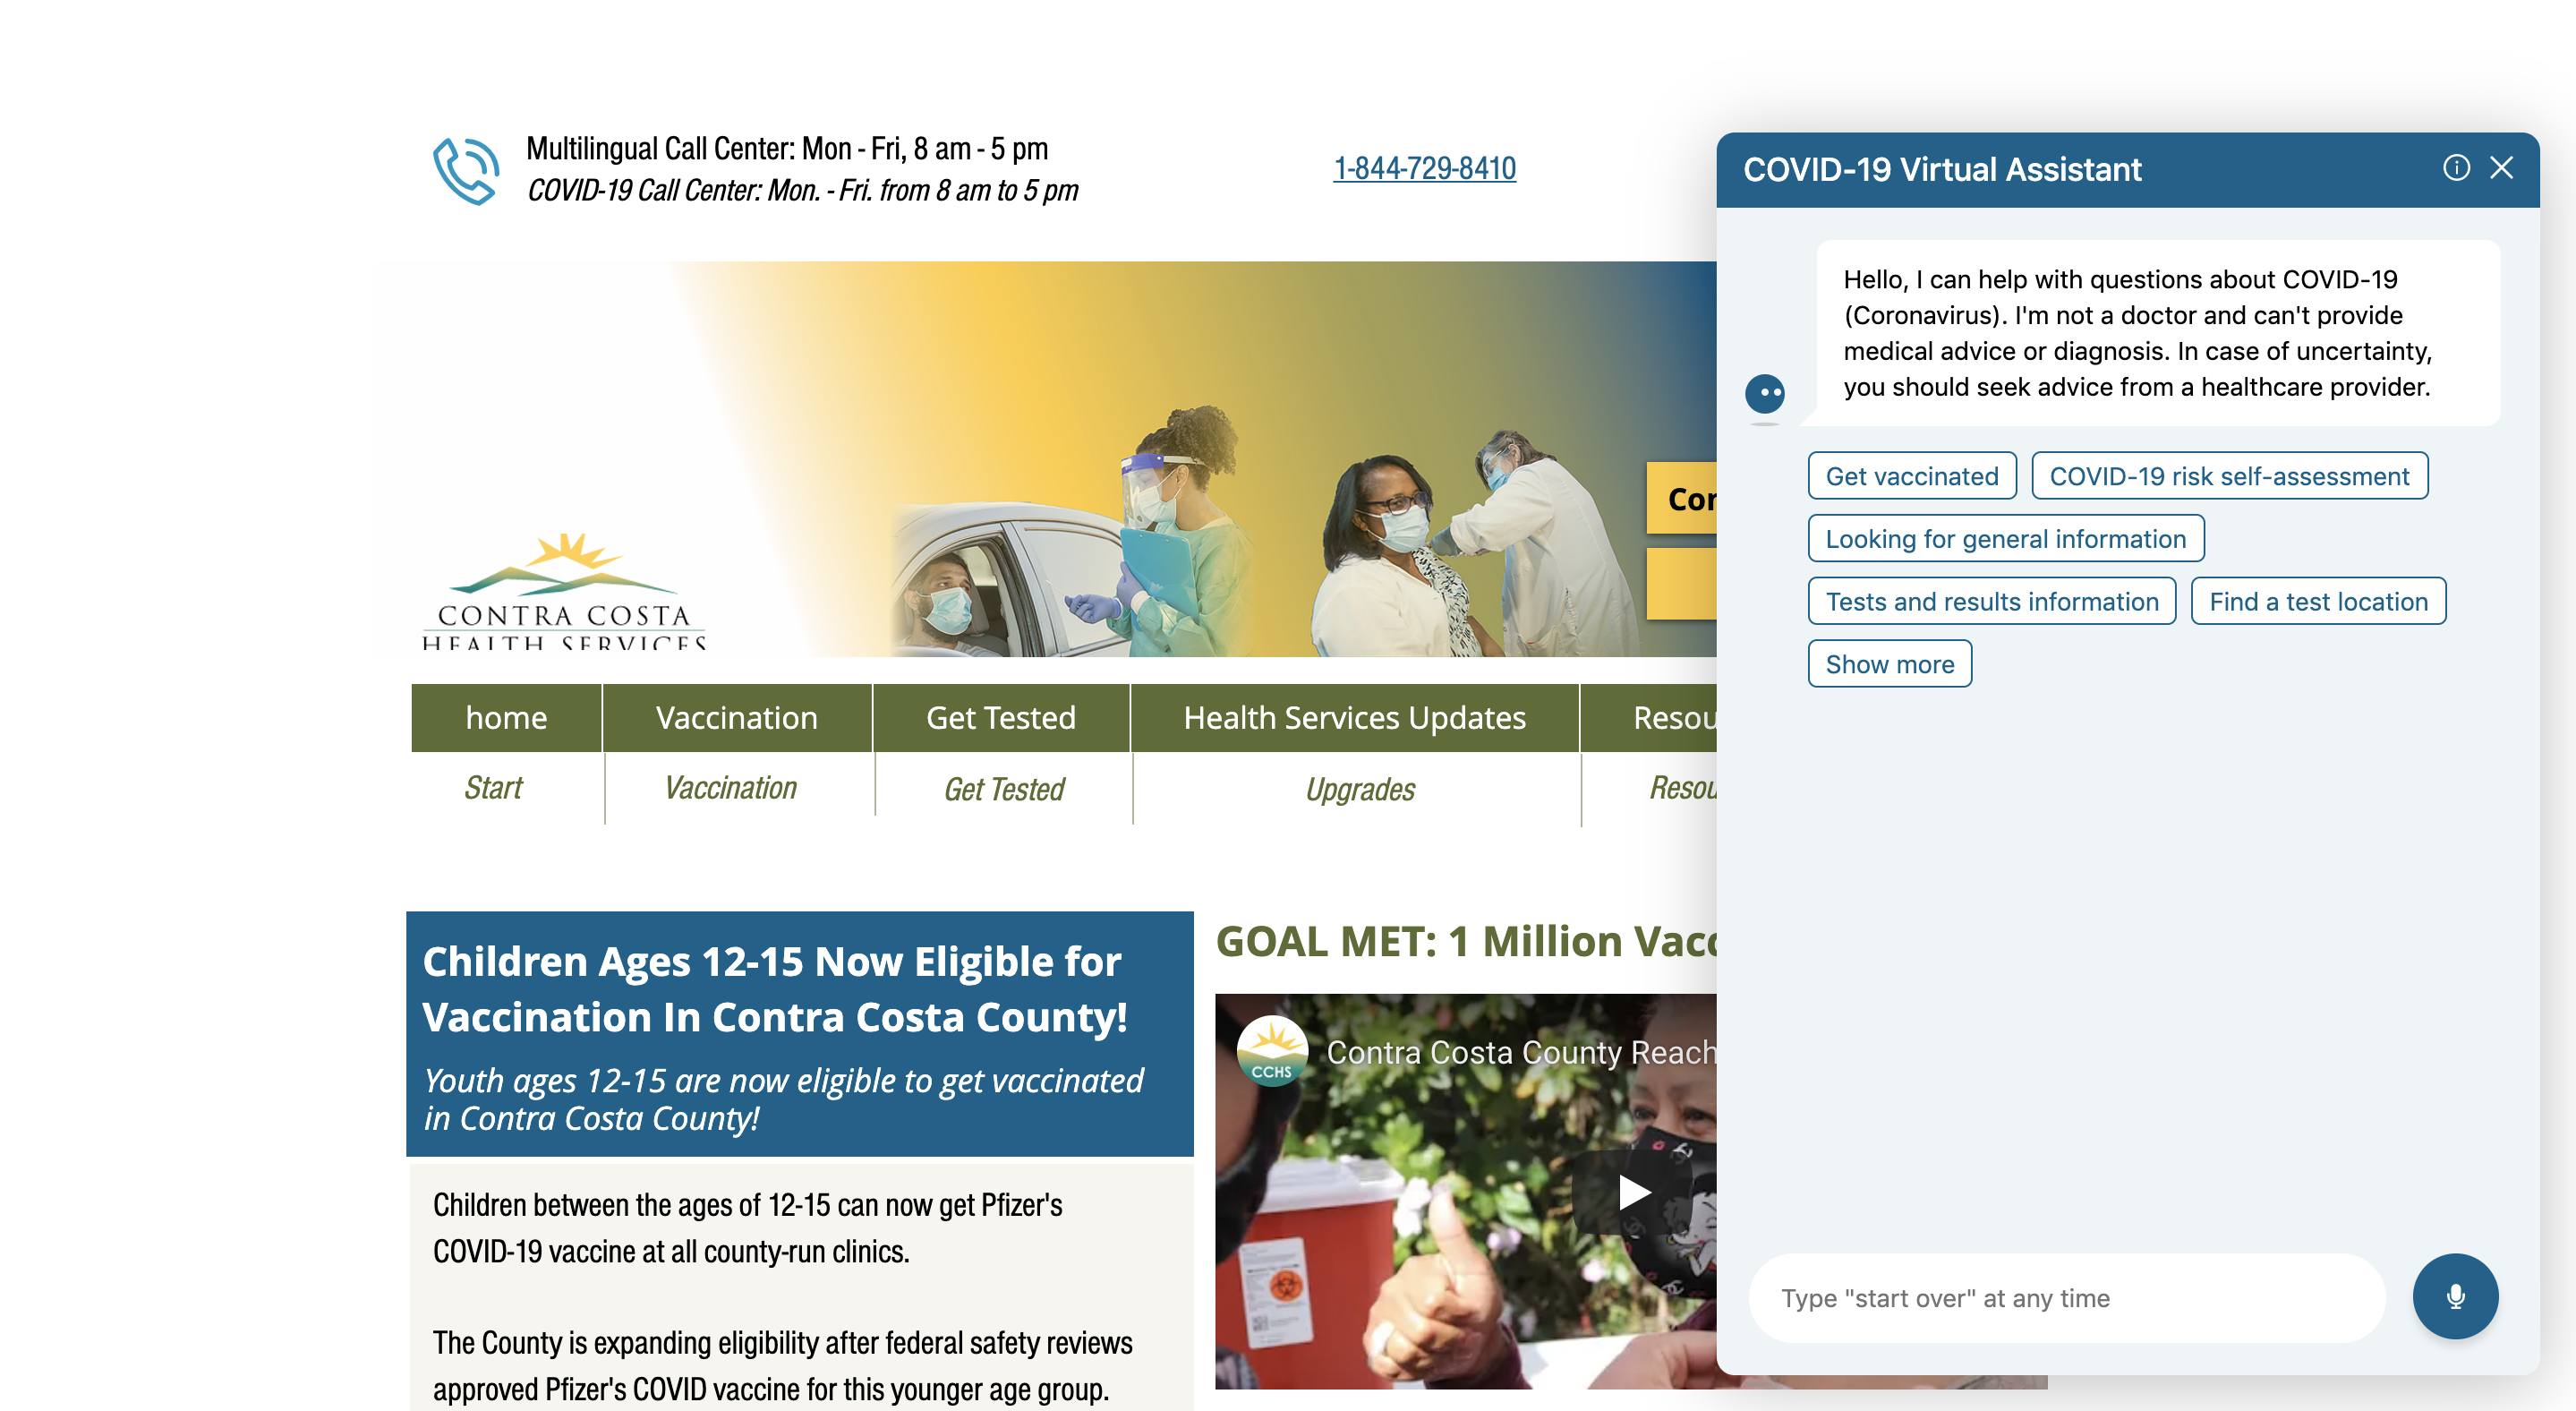 Hyro's Virtual Assistant deployed on Contra Costa Health Services homepage